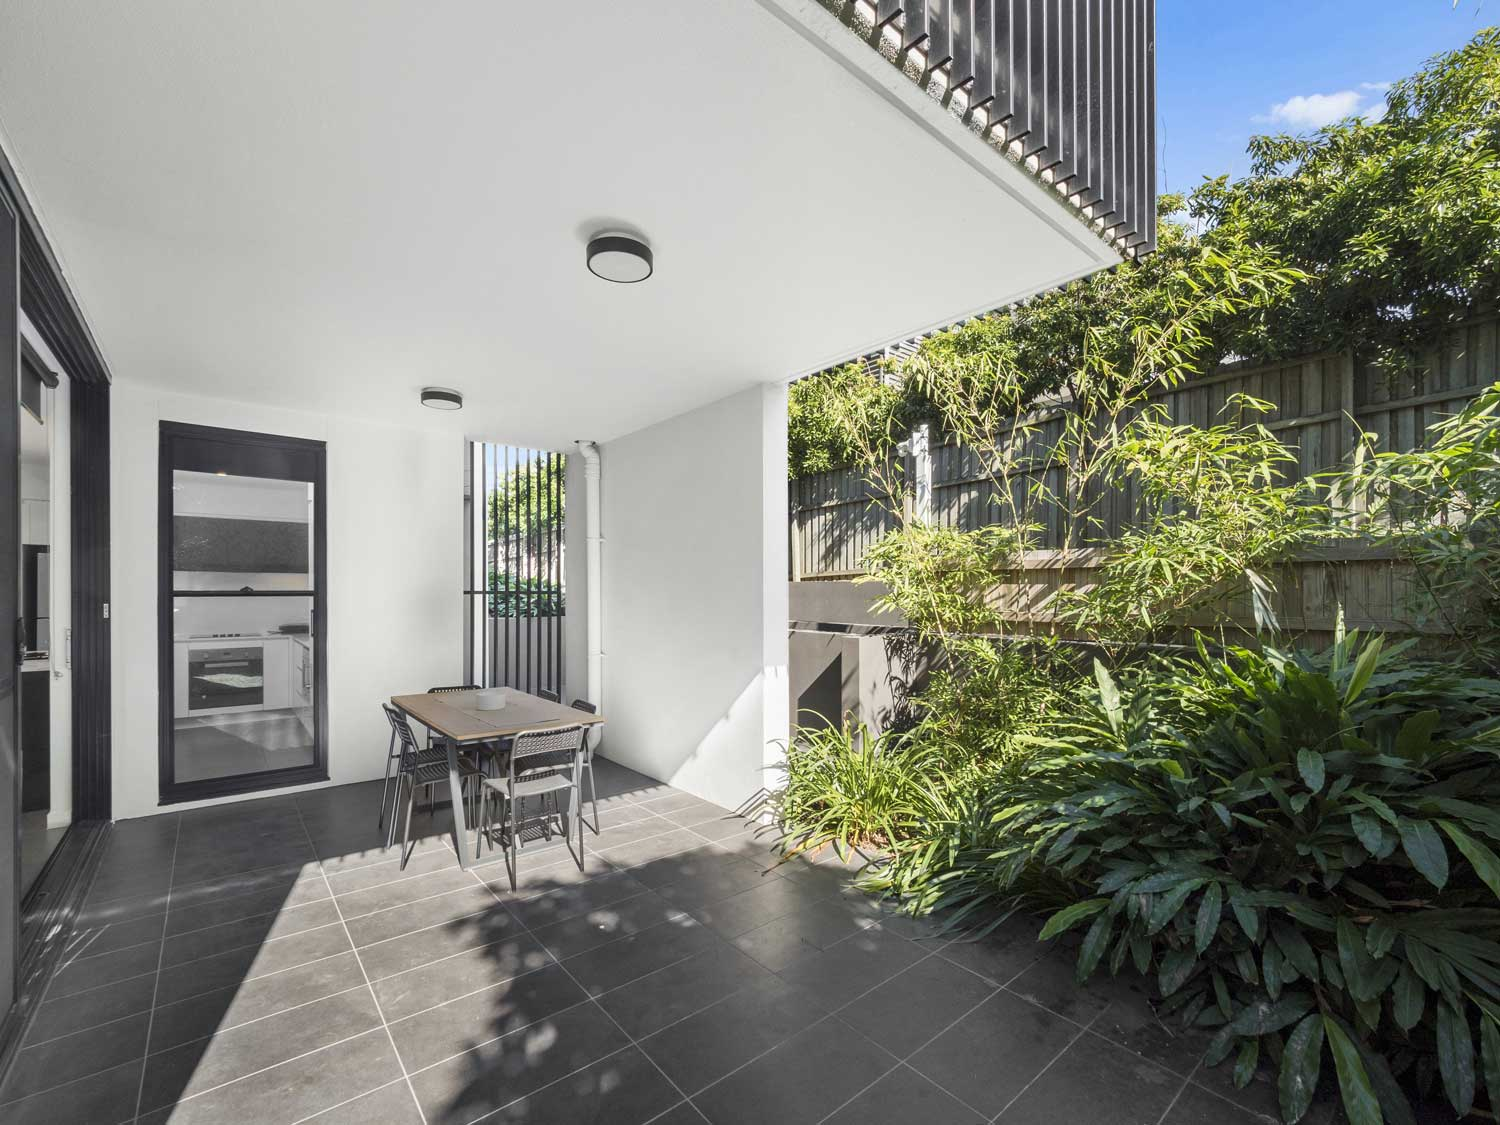 The outdoor living area - Apartment photography at Upper Mt Gravatt